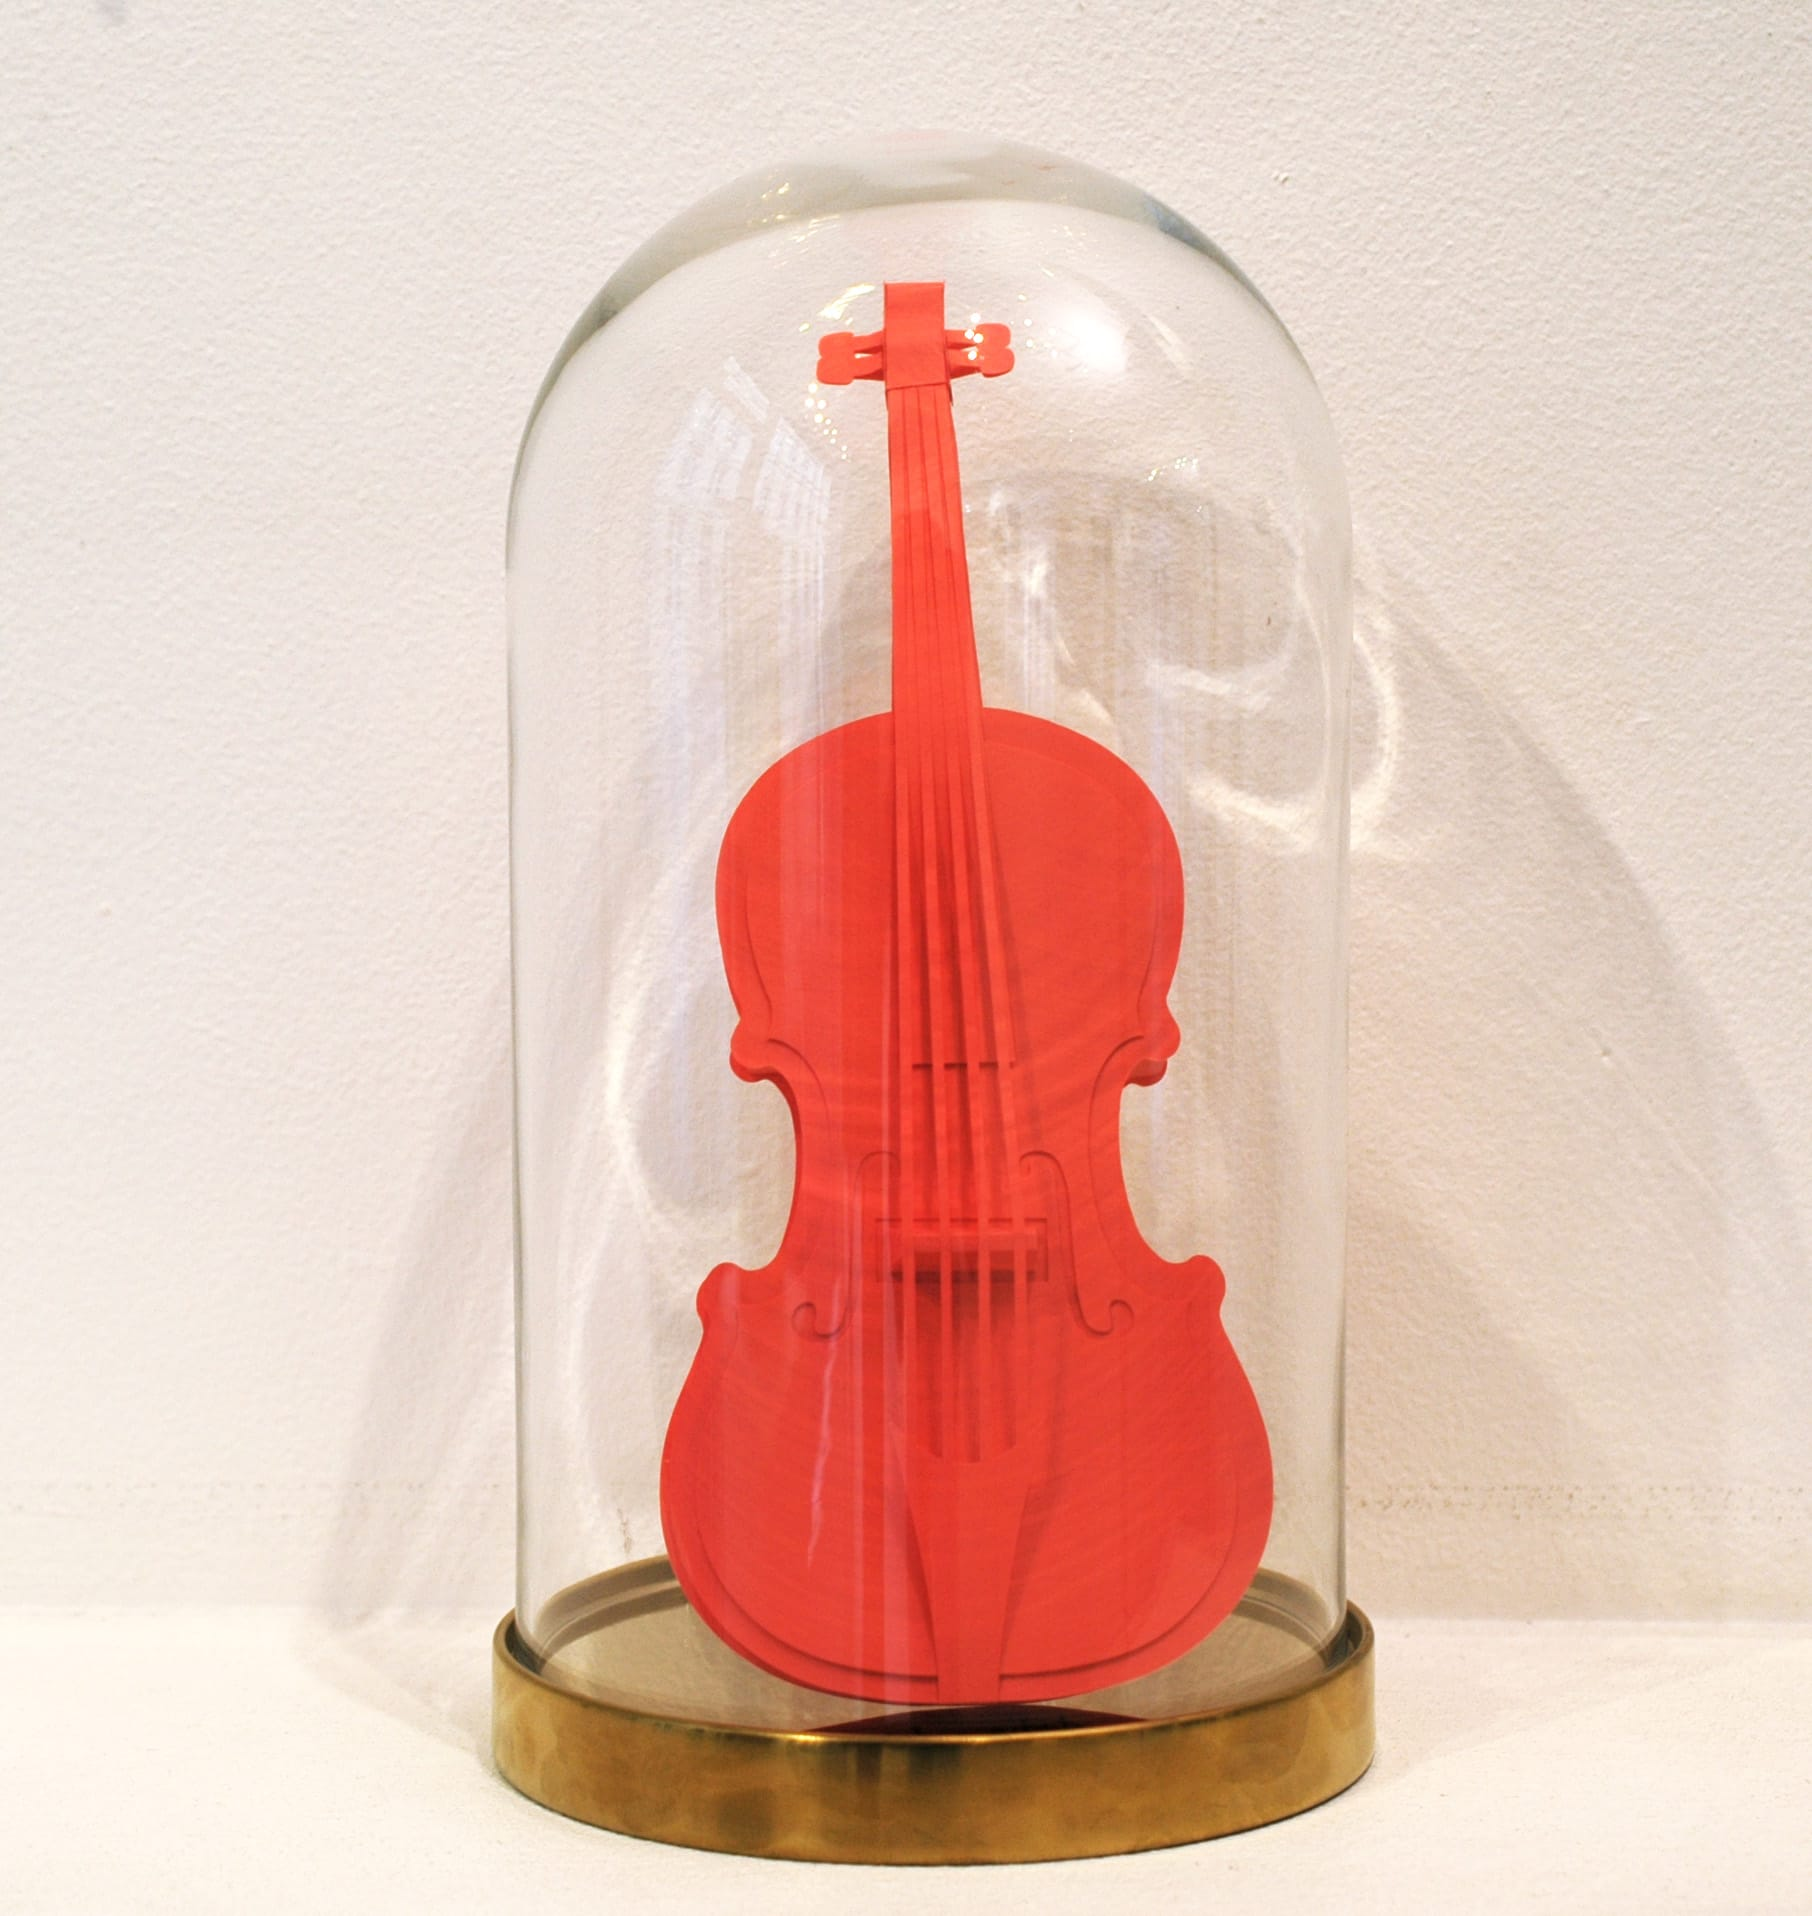 Galerie Art Jingle Maud Vantours Violon Saumon 25 x 9.5 cm